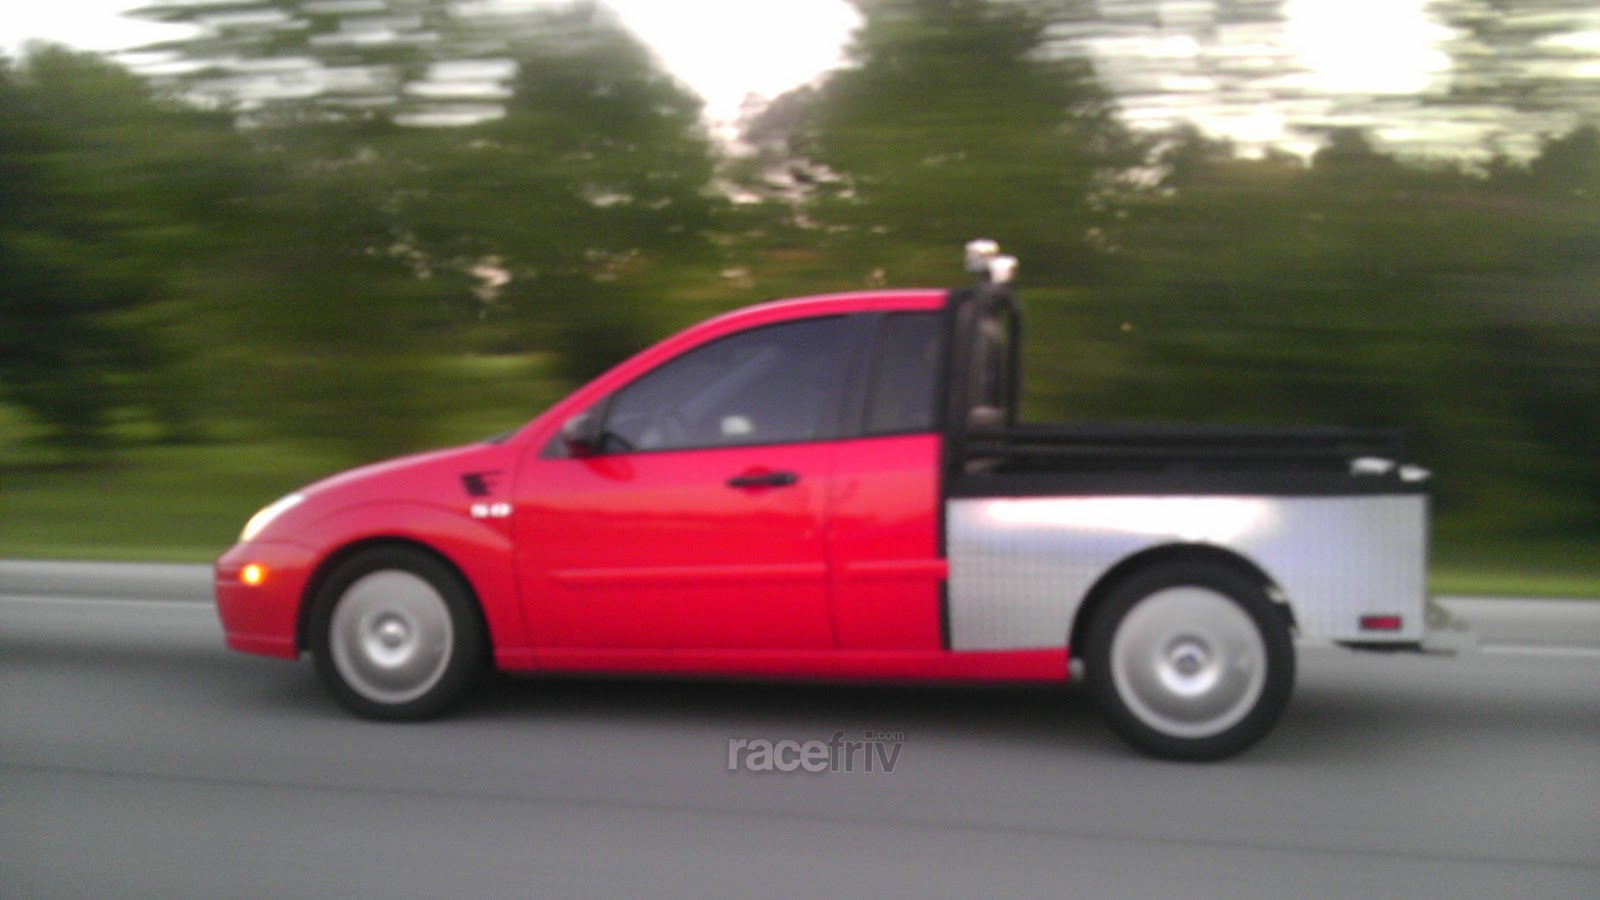 racefriv.com: A home-made Focus Truck - Fruck? And a car with a new ...